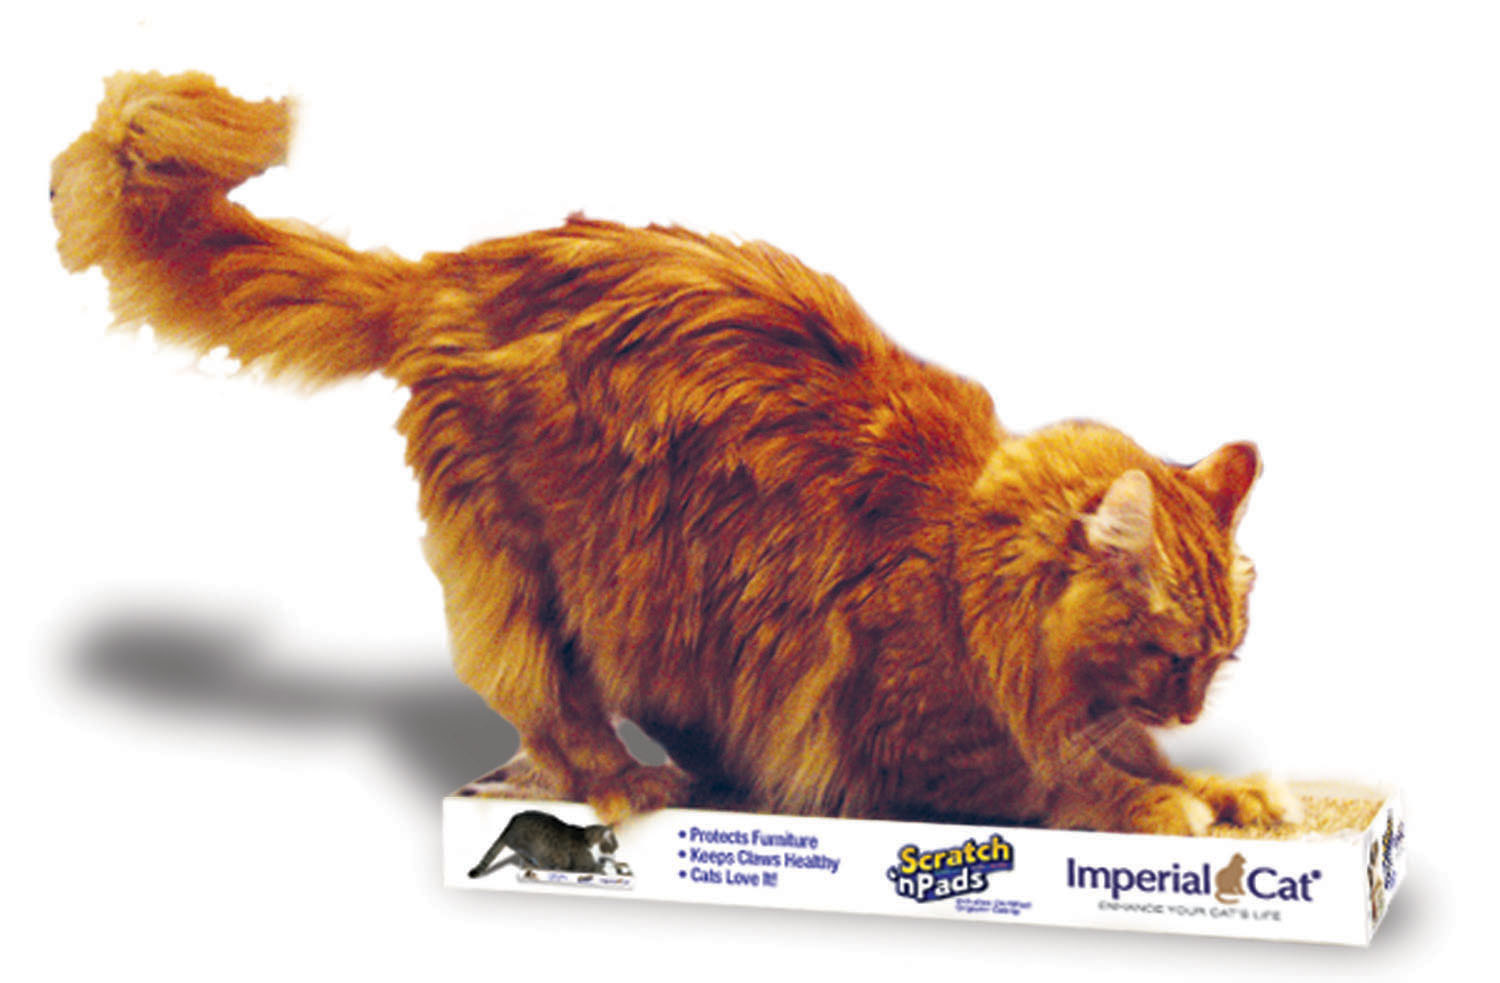 Imperial Cat - Scratch 'n Pads